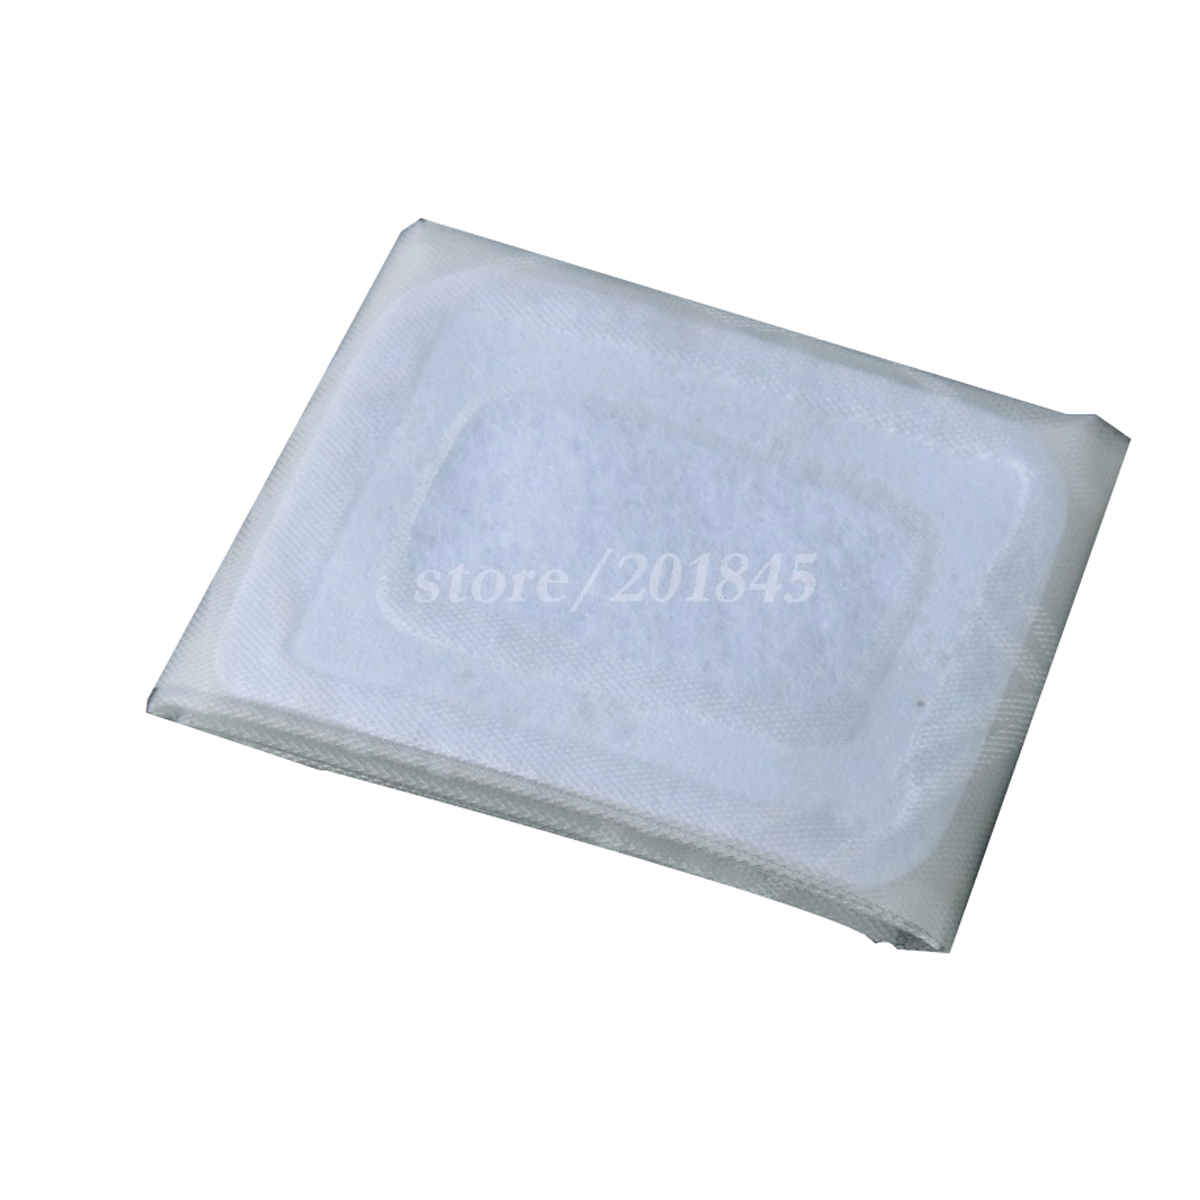 Free Shipping 50Pcs Emergency CPR Face Shield Barrier Pocket CPR Mask One Valve Mouth To Mouth Protect For First Aid Training 50pcs 1lot tip102 st to 220 free shipping